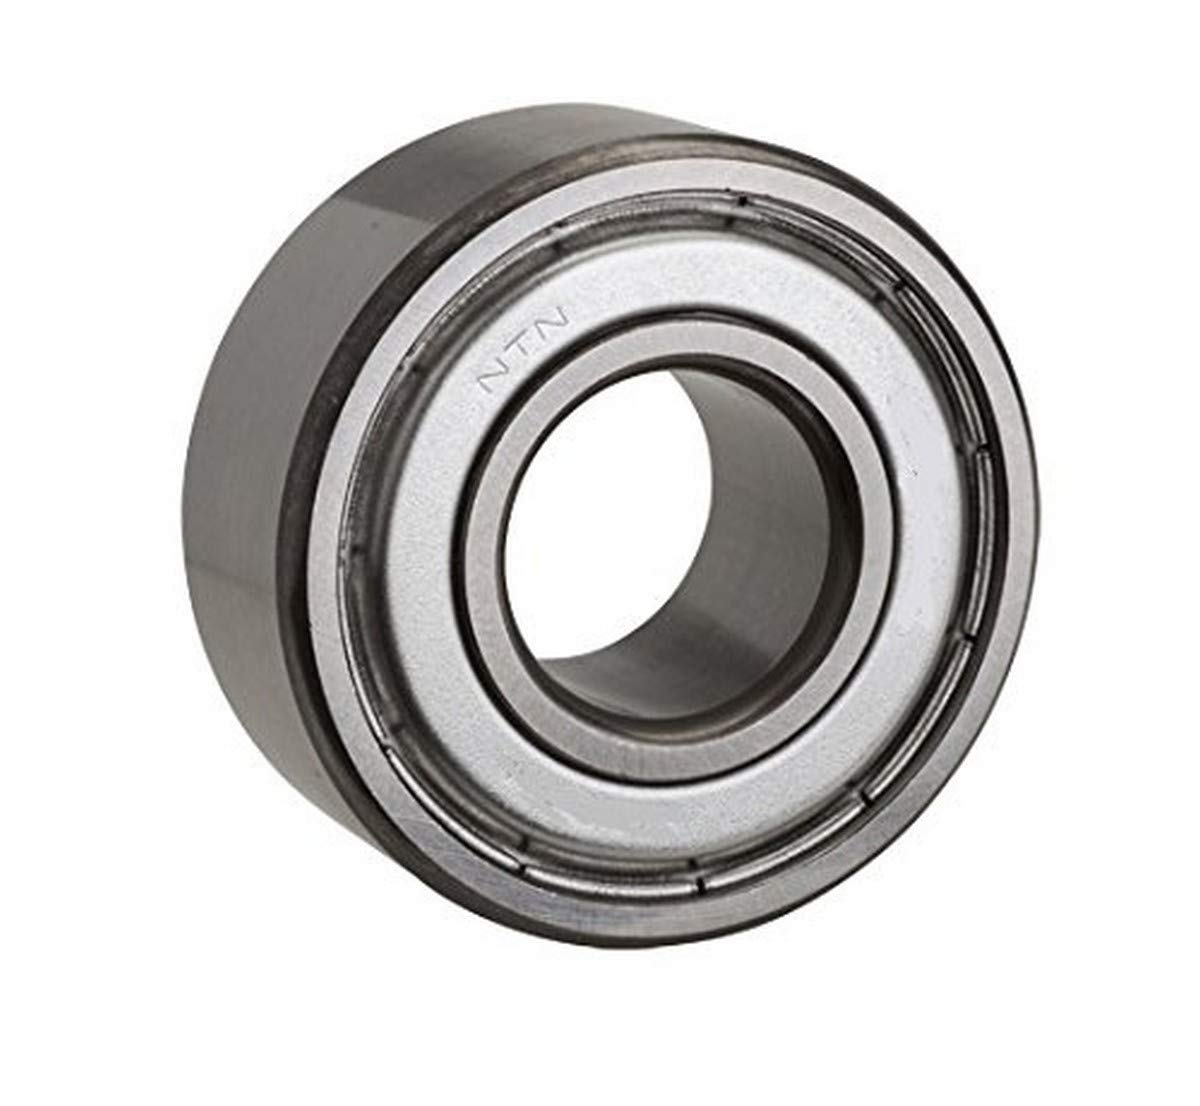 2021 spring and summer new NTN Bearing 6202Z Single Row Deep Groove Daily bargain sale Radial No Ball